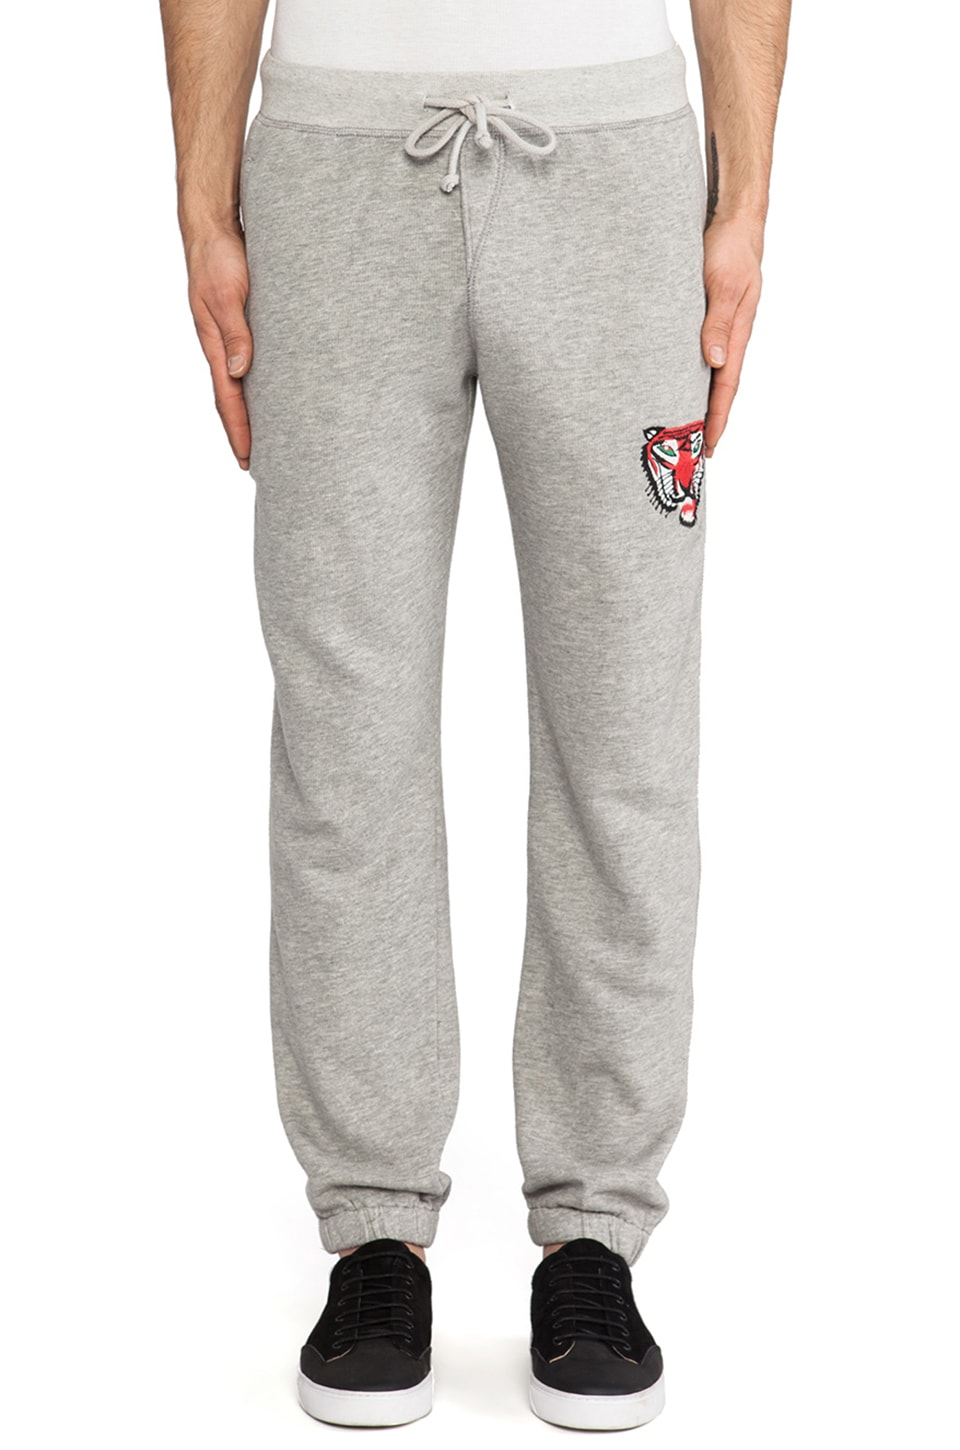 Burkman Bros. Fleece Pant in Heather Grey